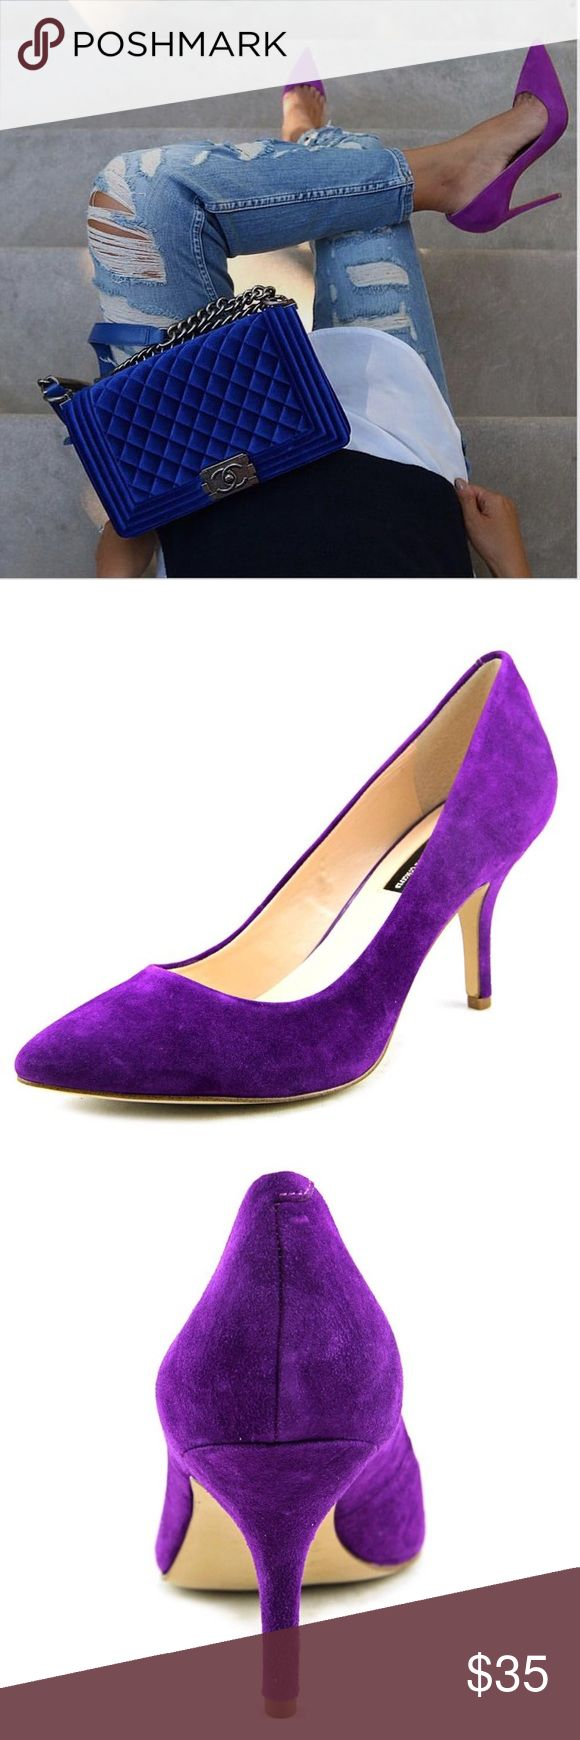 Brand New Purple Suede INC Point Heels Brand New Purple Suede INC Point Heels ✖️No Trades✖️If you have an offer please go through the offer button❤ INC International Concepts Shoes Heels